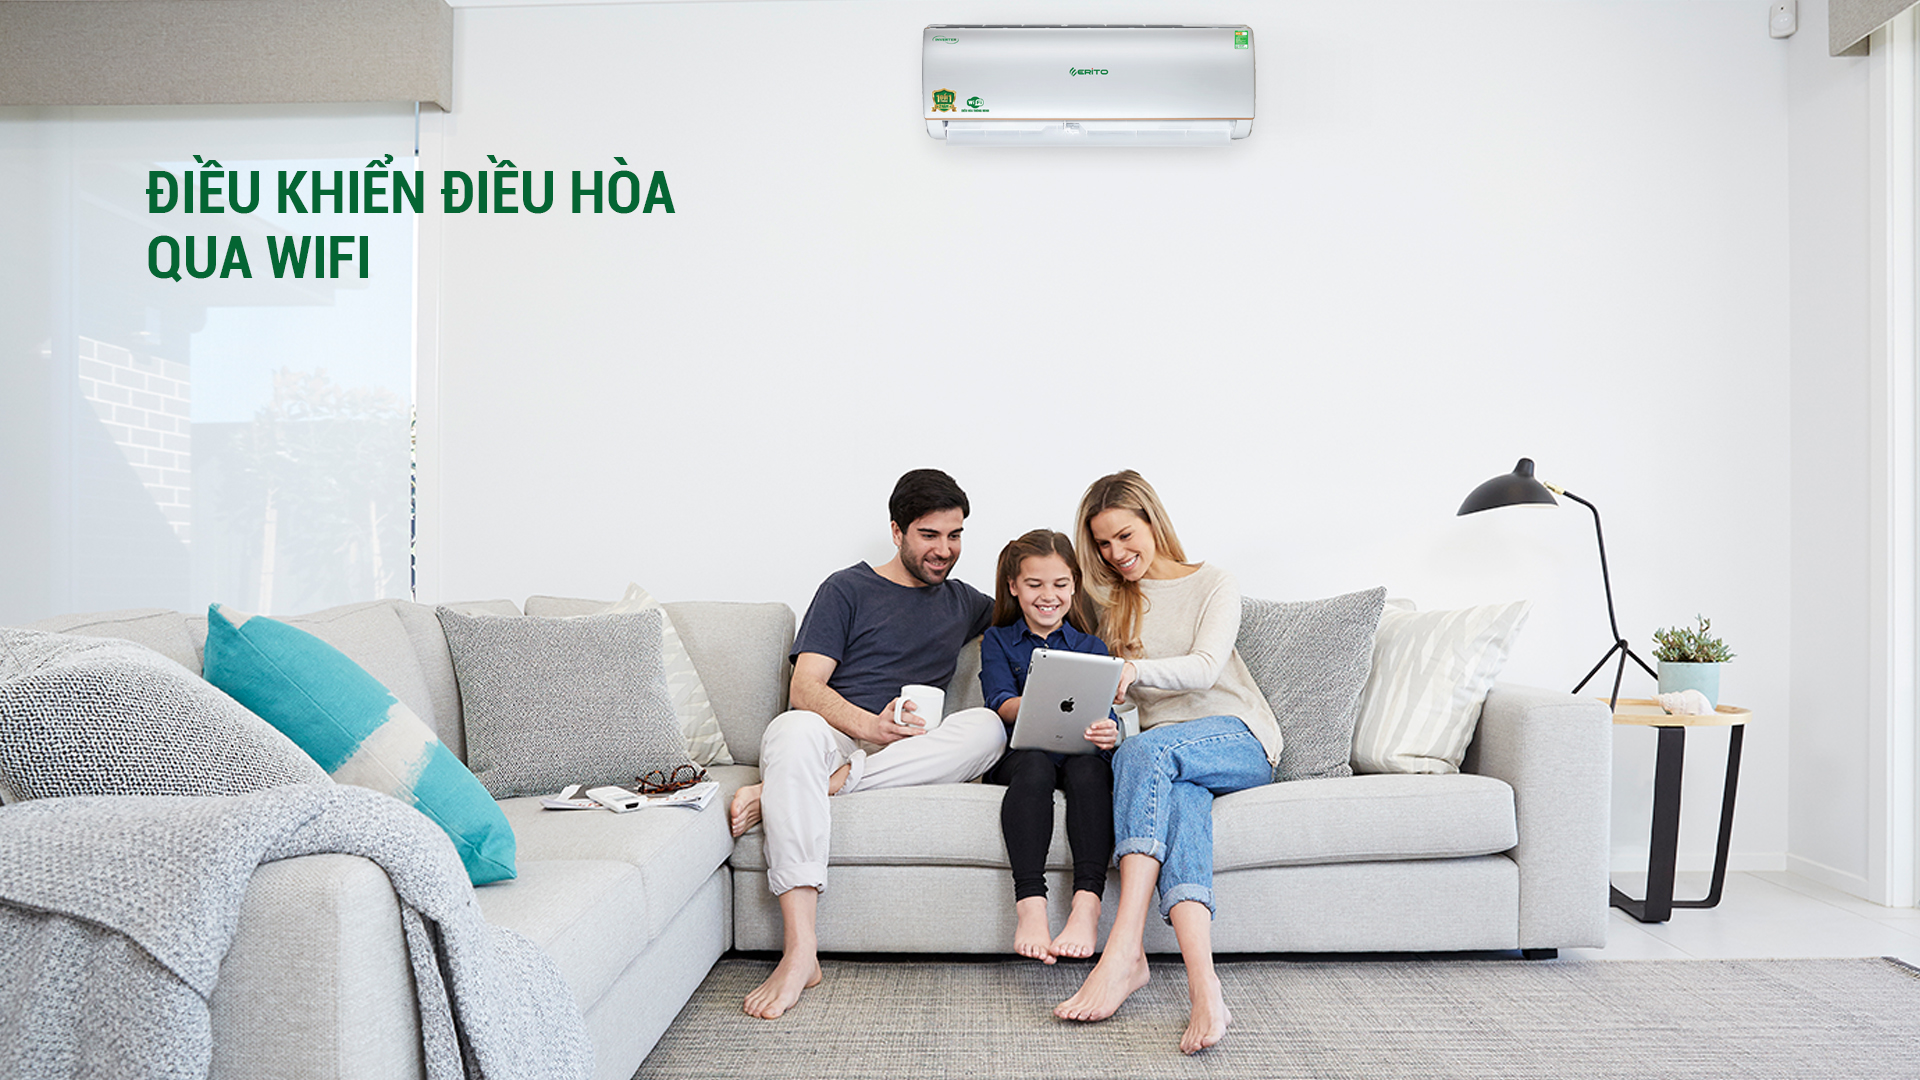 LỢI ÍCH CỦA VIỆC ĐIỀU KHIỂN ĐIỀU HÒA QUA WIFI